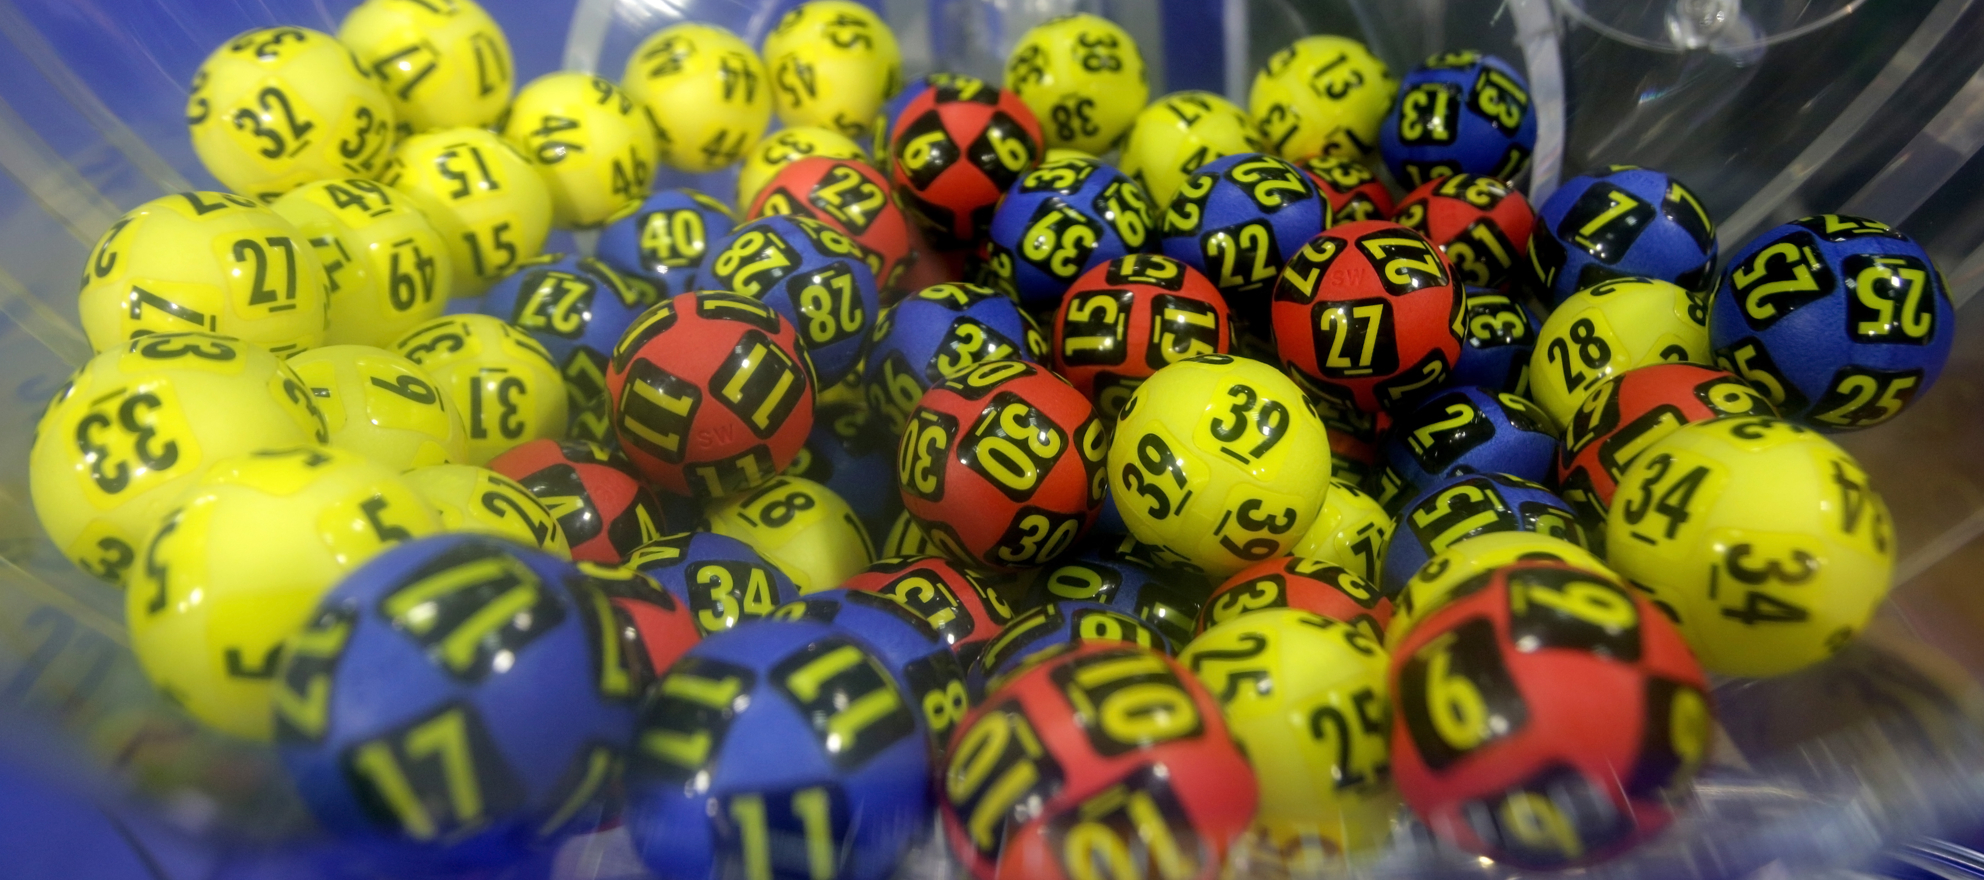 D.C. area property selects residents via lottery